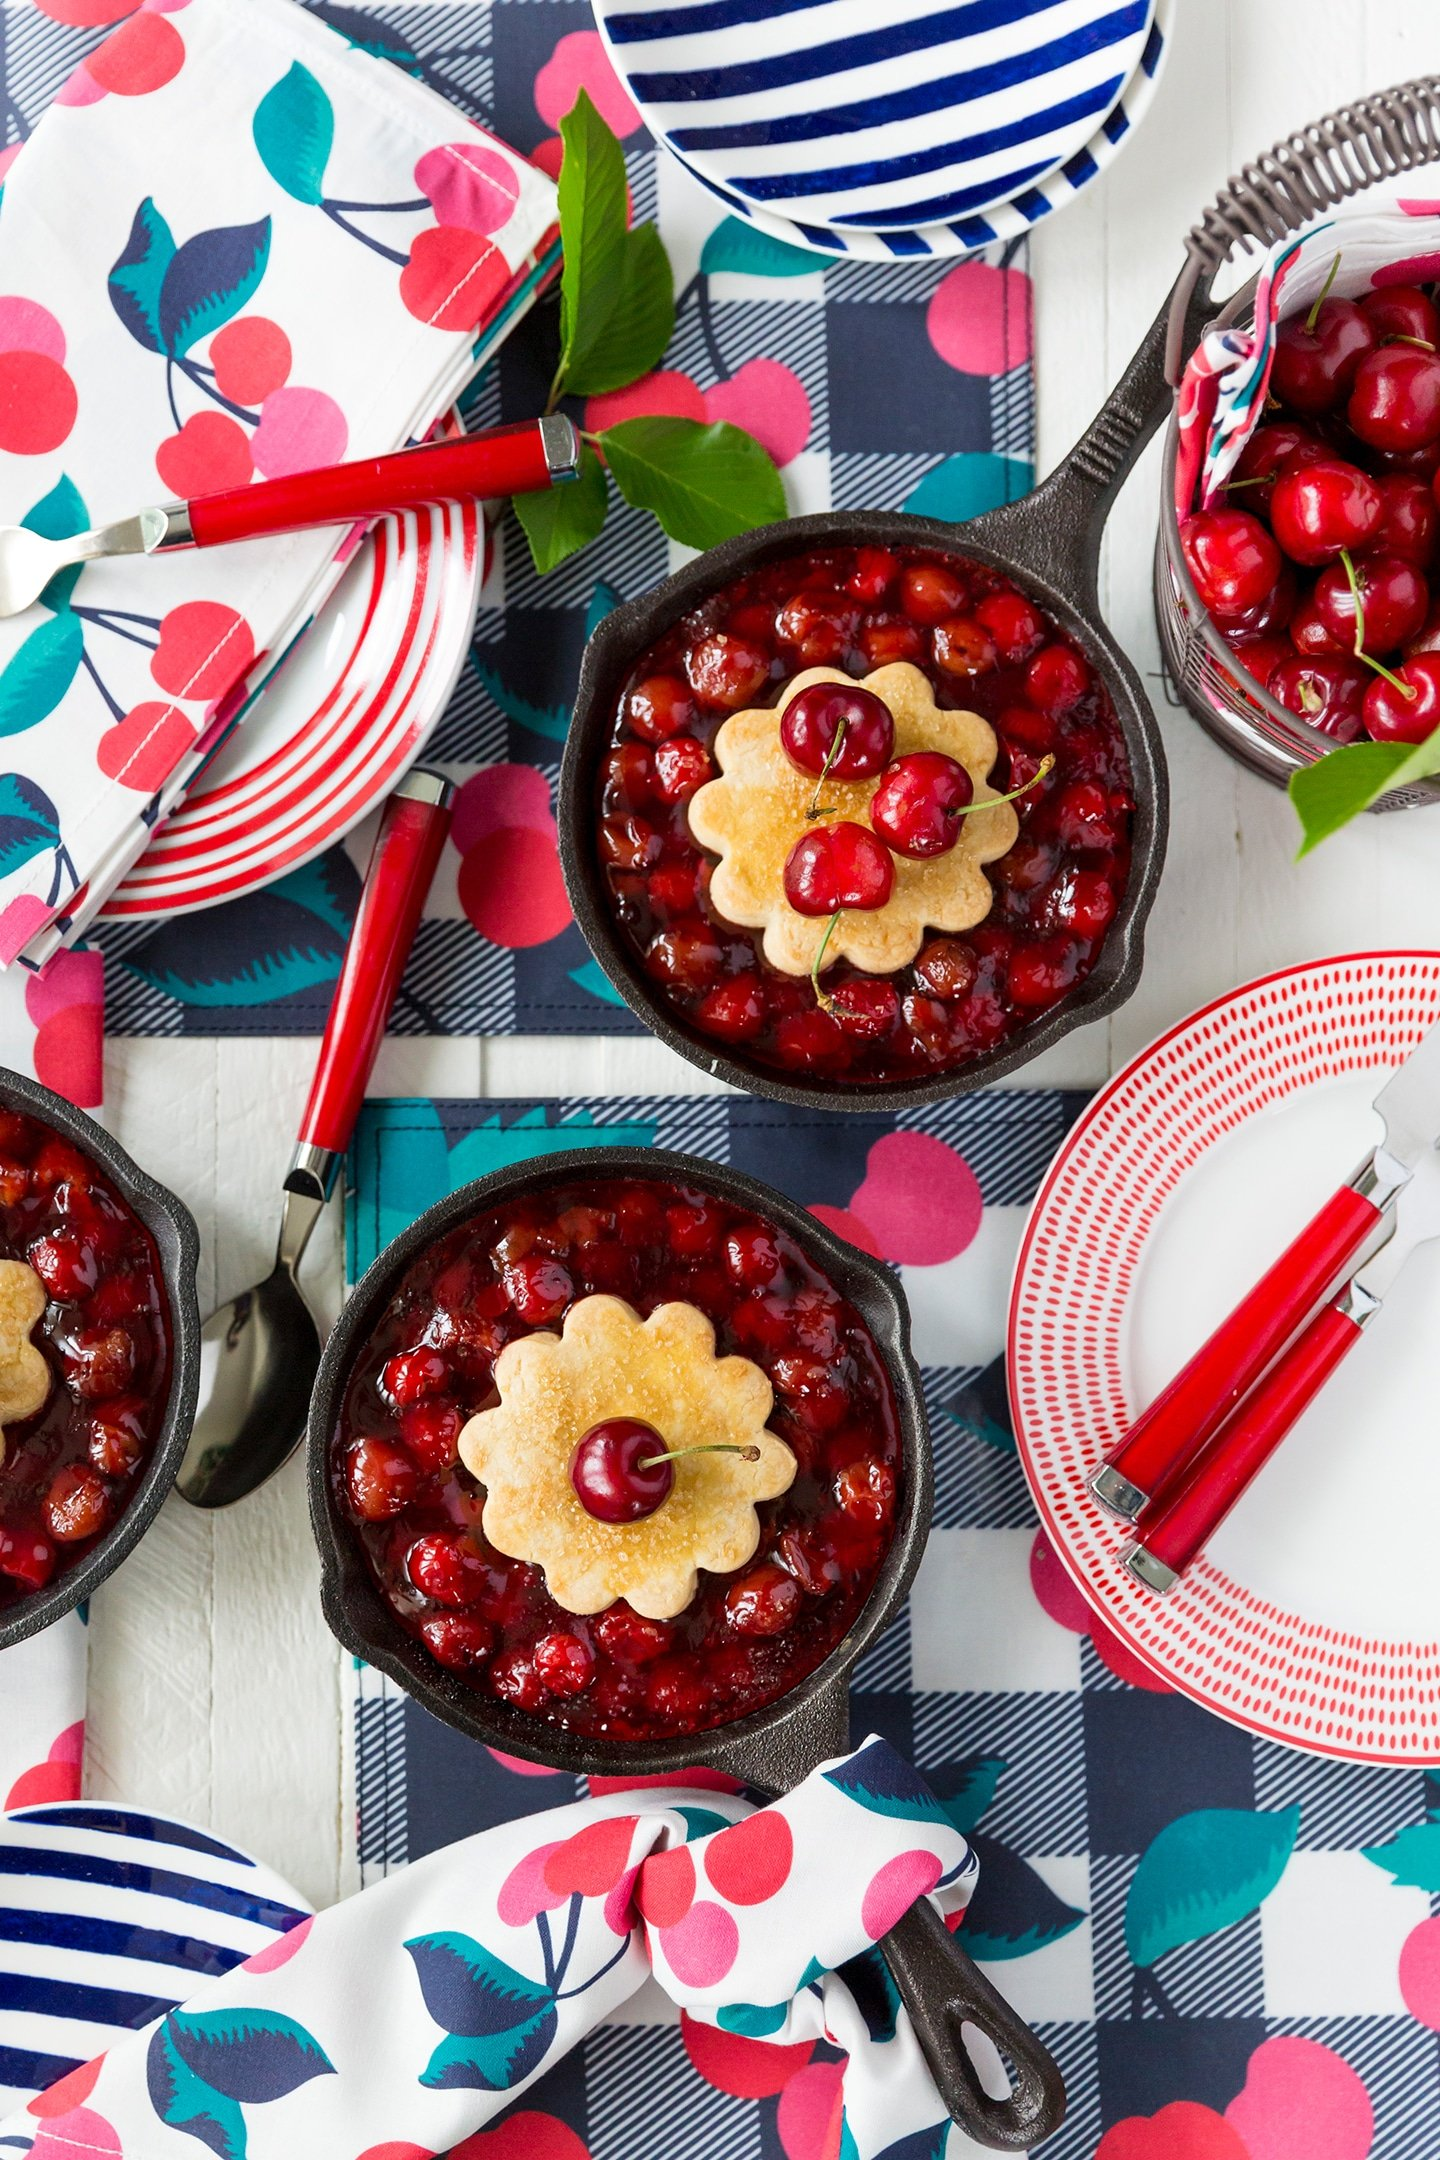 Cherry Cobbler Day, celebrate with a homemade skillet cherry cobbler!